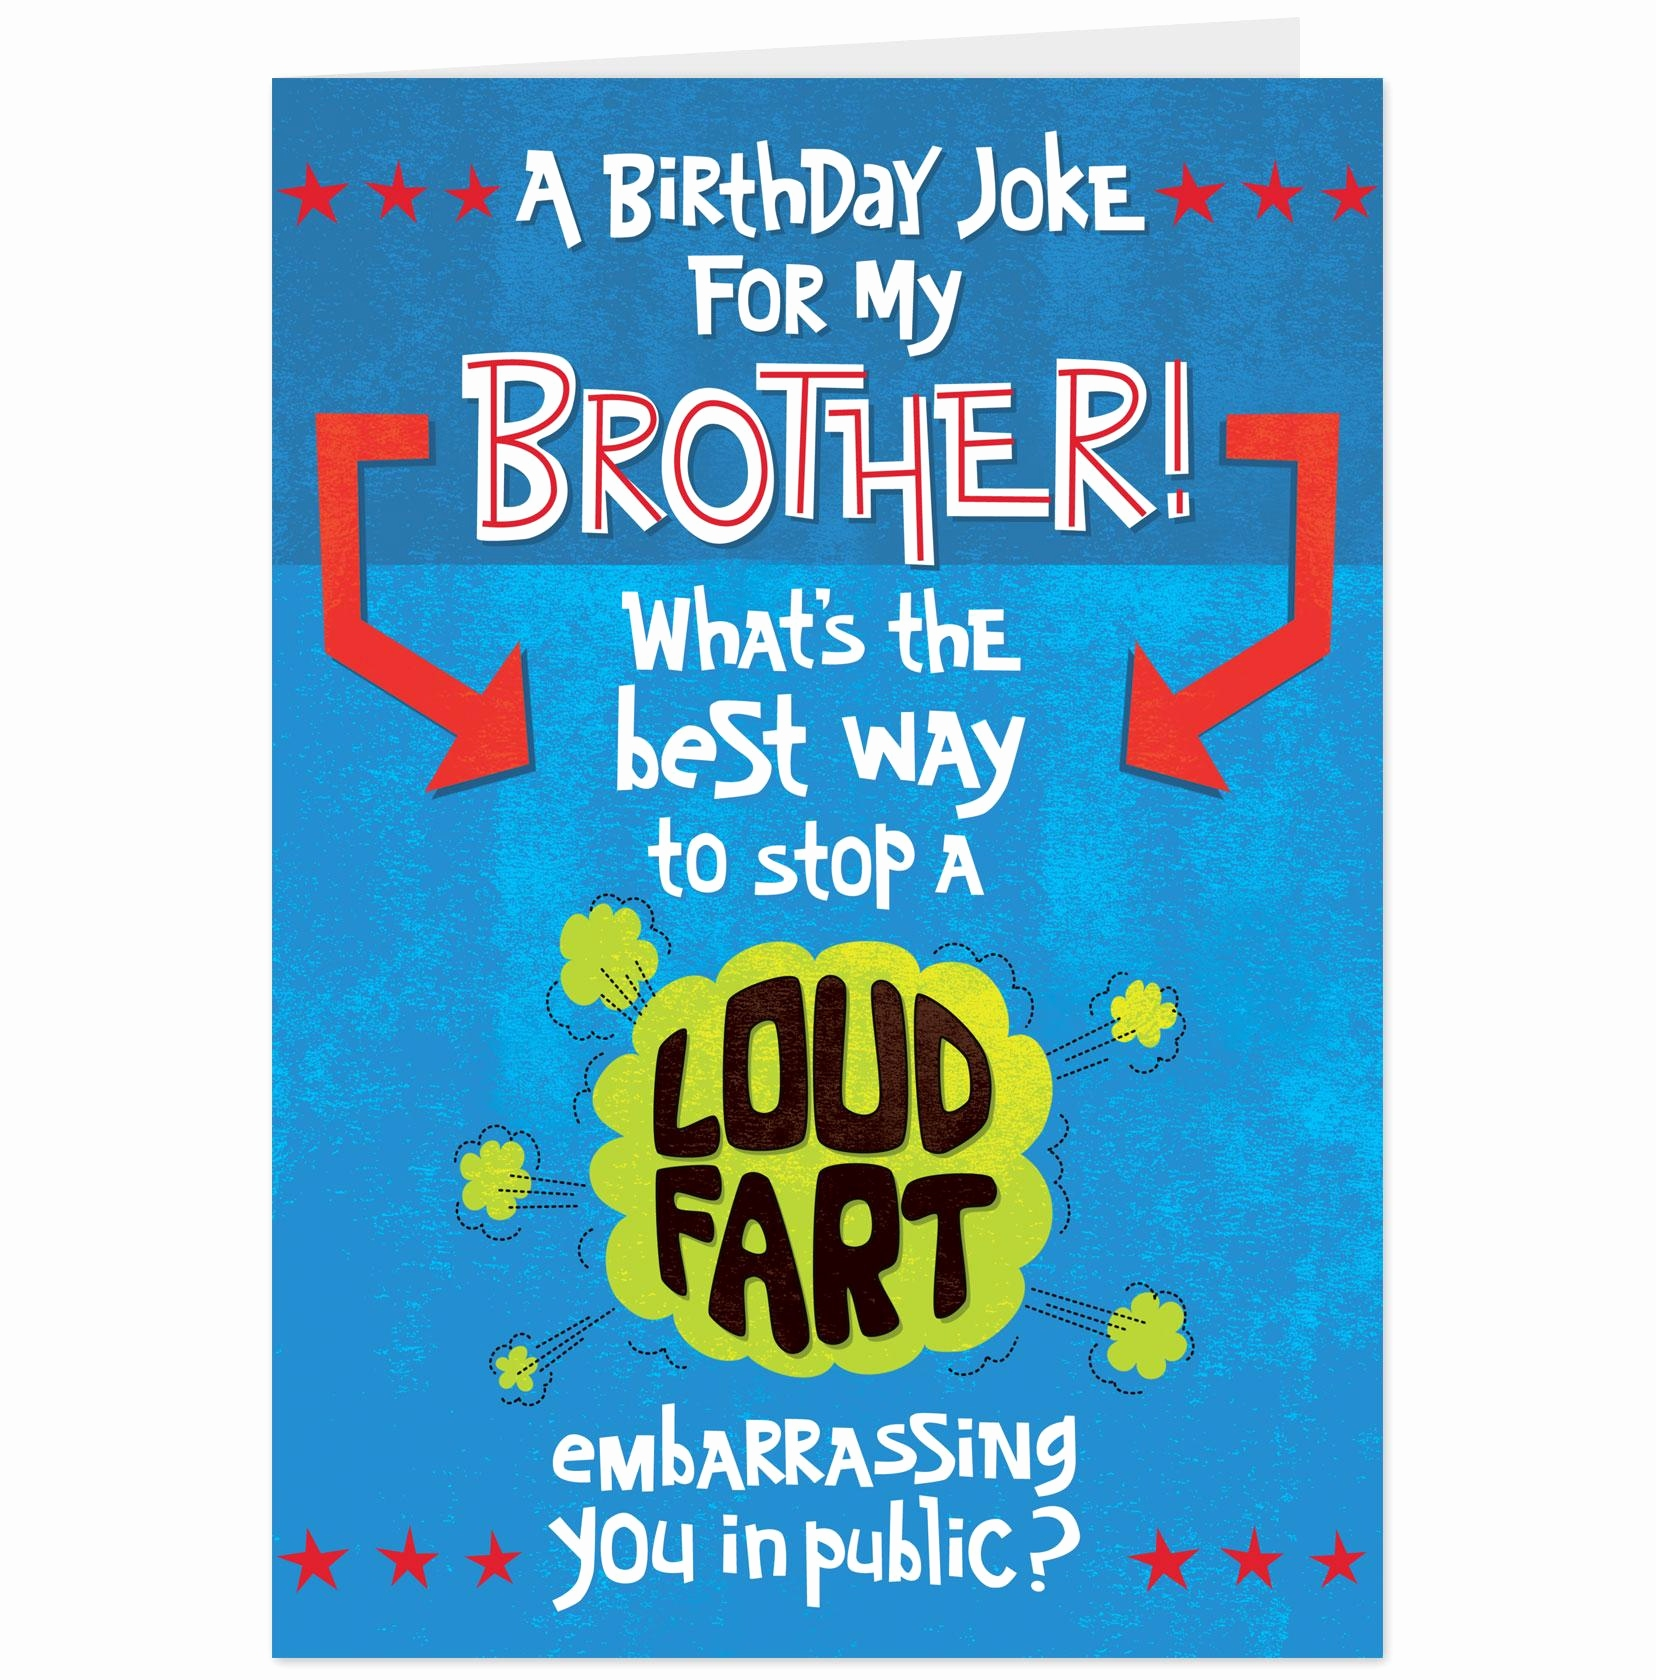 funny birthday card sayings for brother ; funny-birthday-cards-for-brother-in-law-beautiful-birthday-card-sayings-for-brother-funny-birthday-card-for-brother-of-funny-birthday-cards-for-brother-in-law